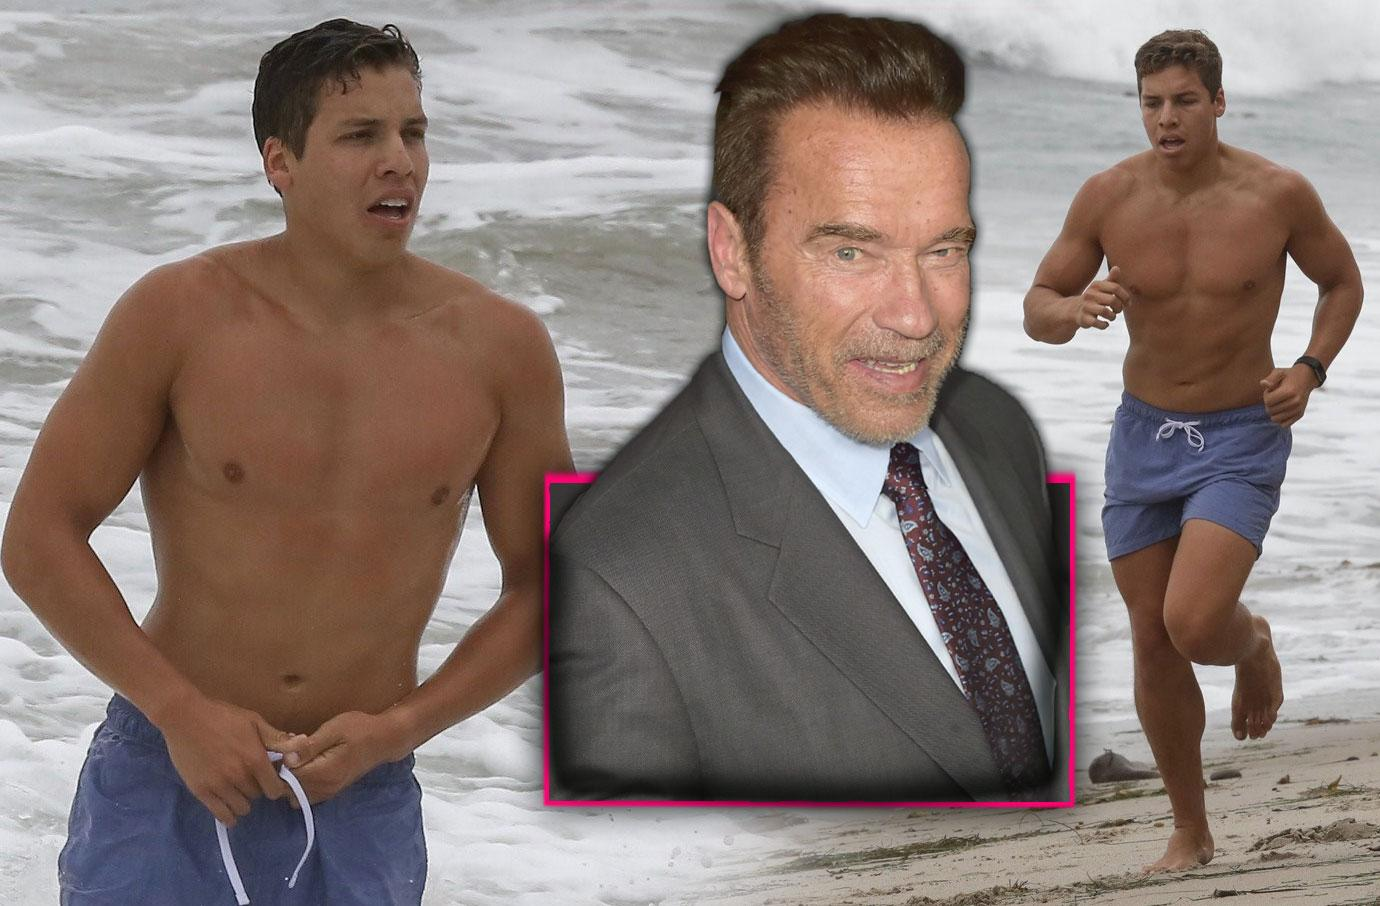 Arnold Schwarzenegger Son Joseph Baena Shows Off Buff Body